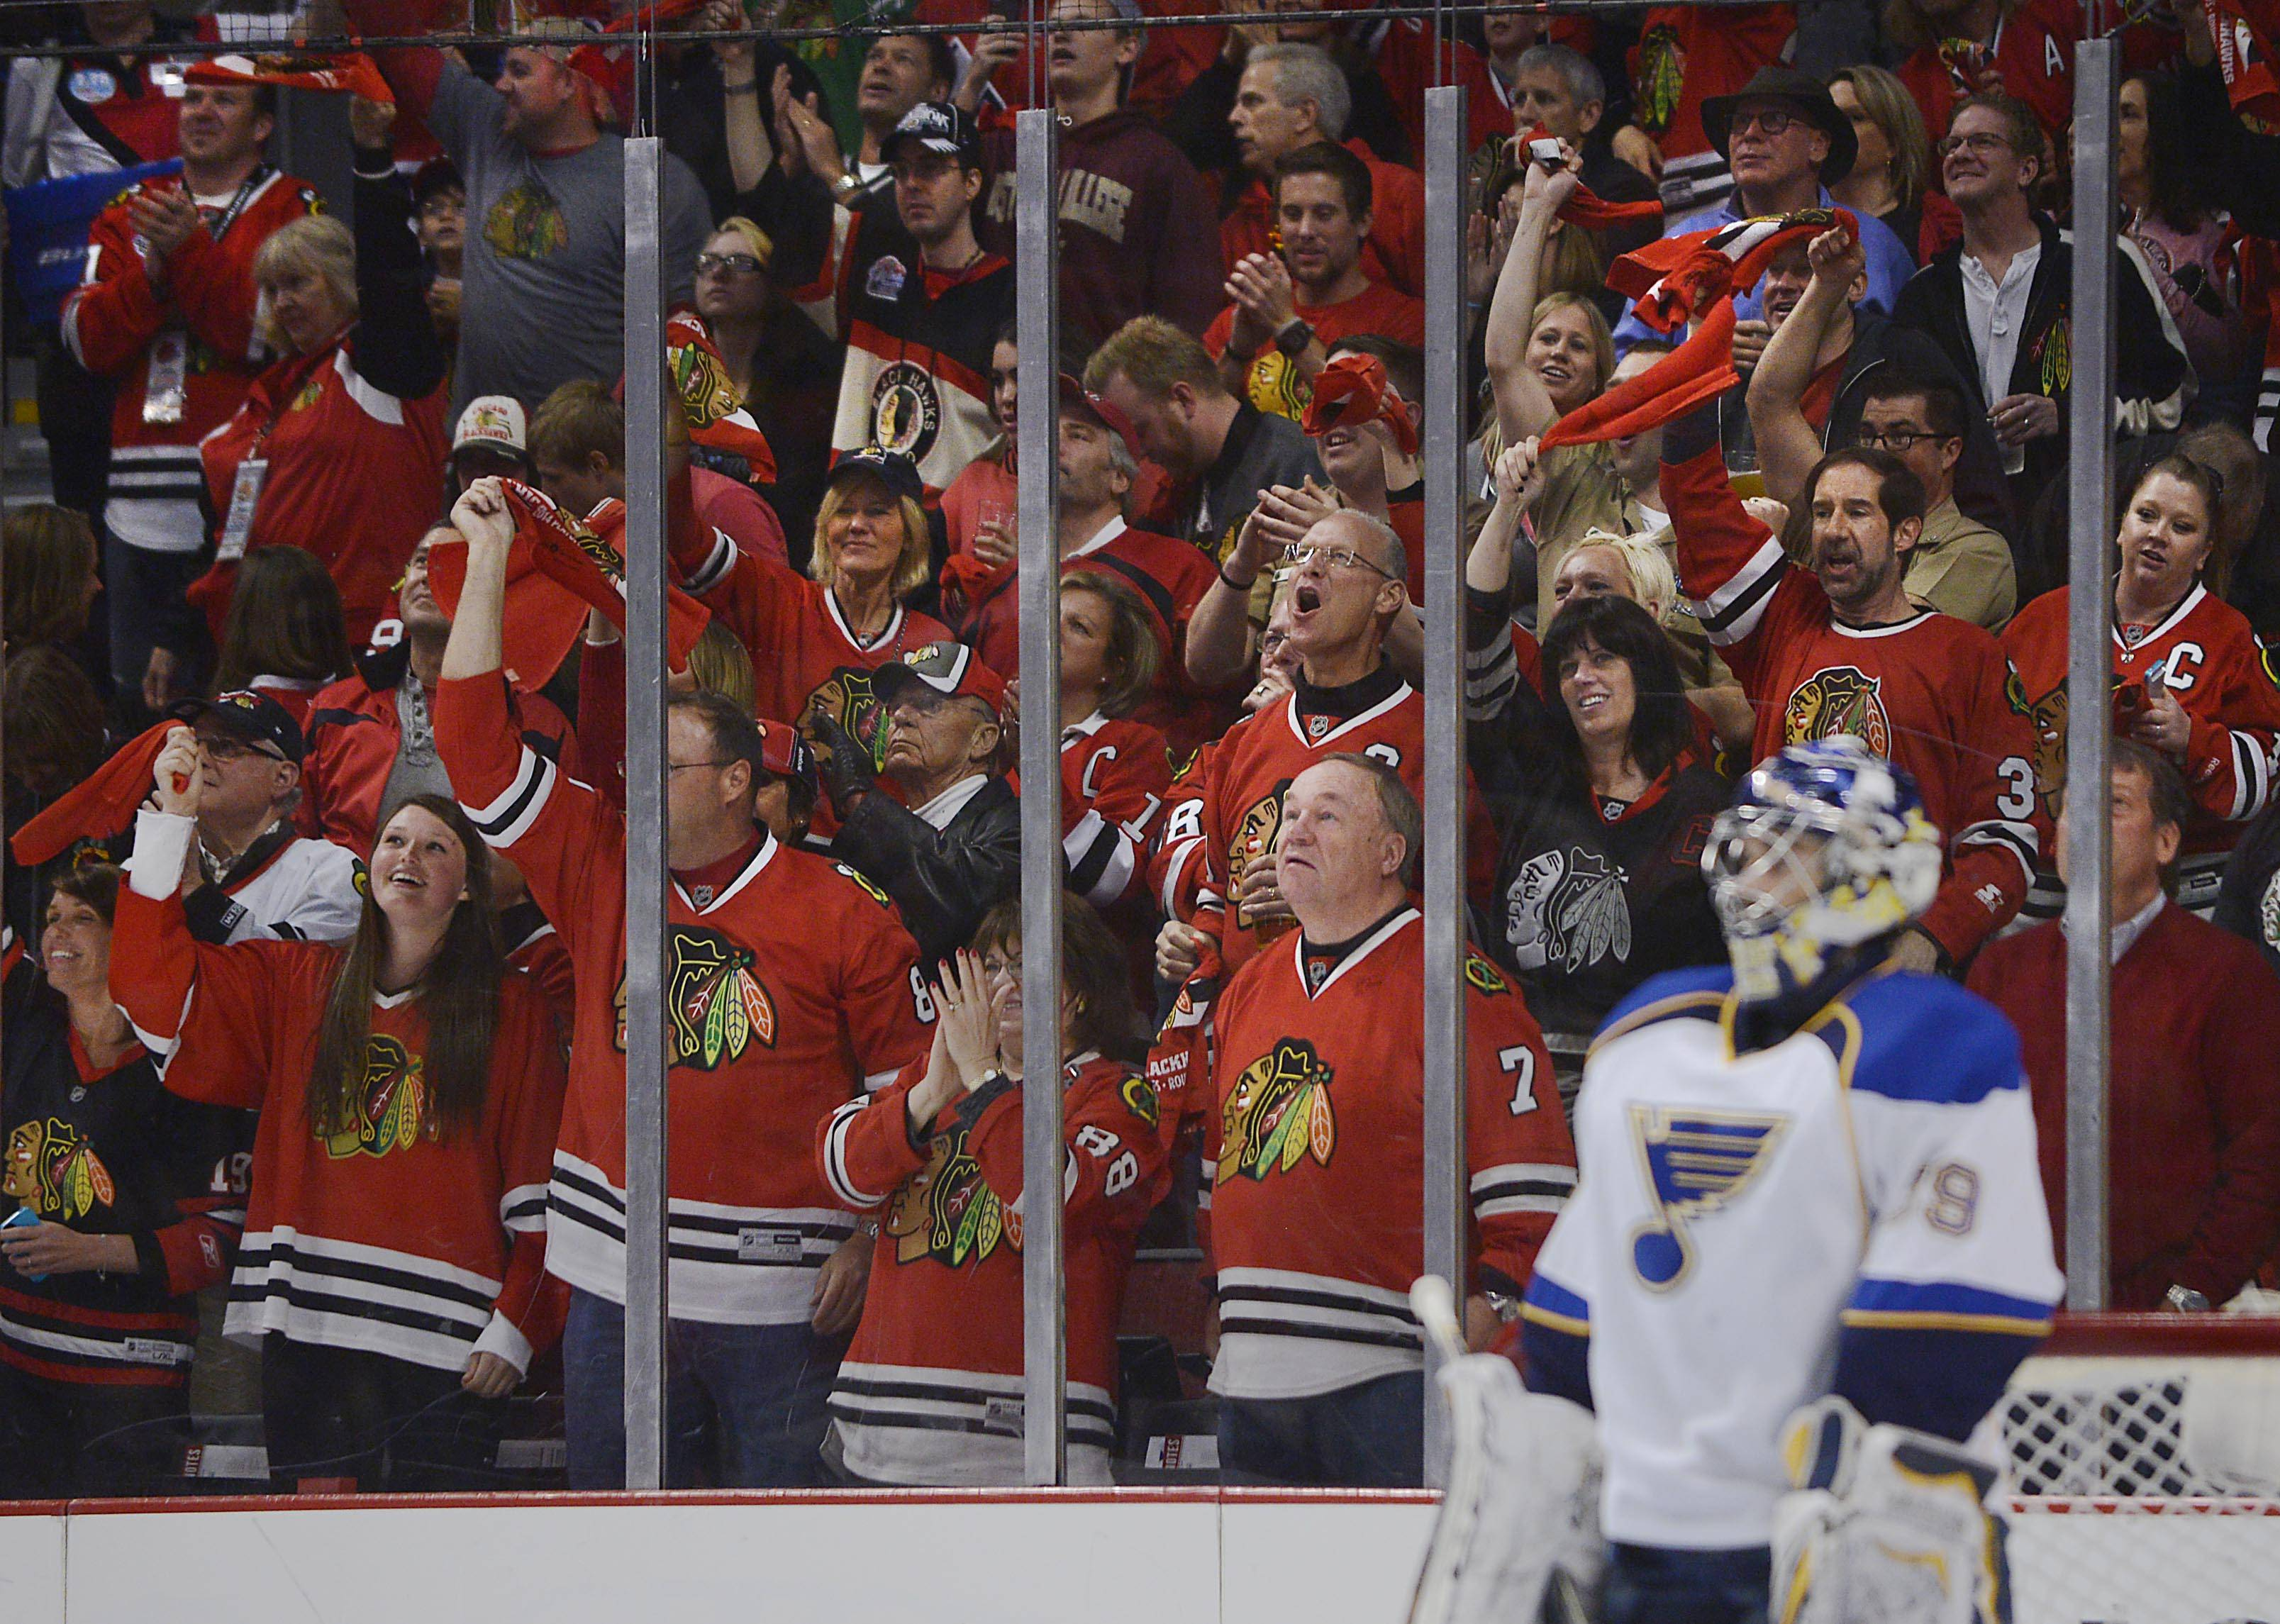 John Starks/jstarks@dailyherald.comThe home team fans celebrate Brian Bickell's goal in the first period as St. Louis Blues goalkeeper Ryan Miller stands motionless Sunday in Game 6. The Hawks won four straight game to capture the series 4-2 and move on in the playoffs.